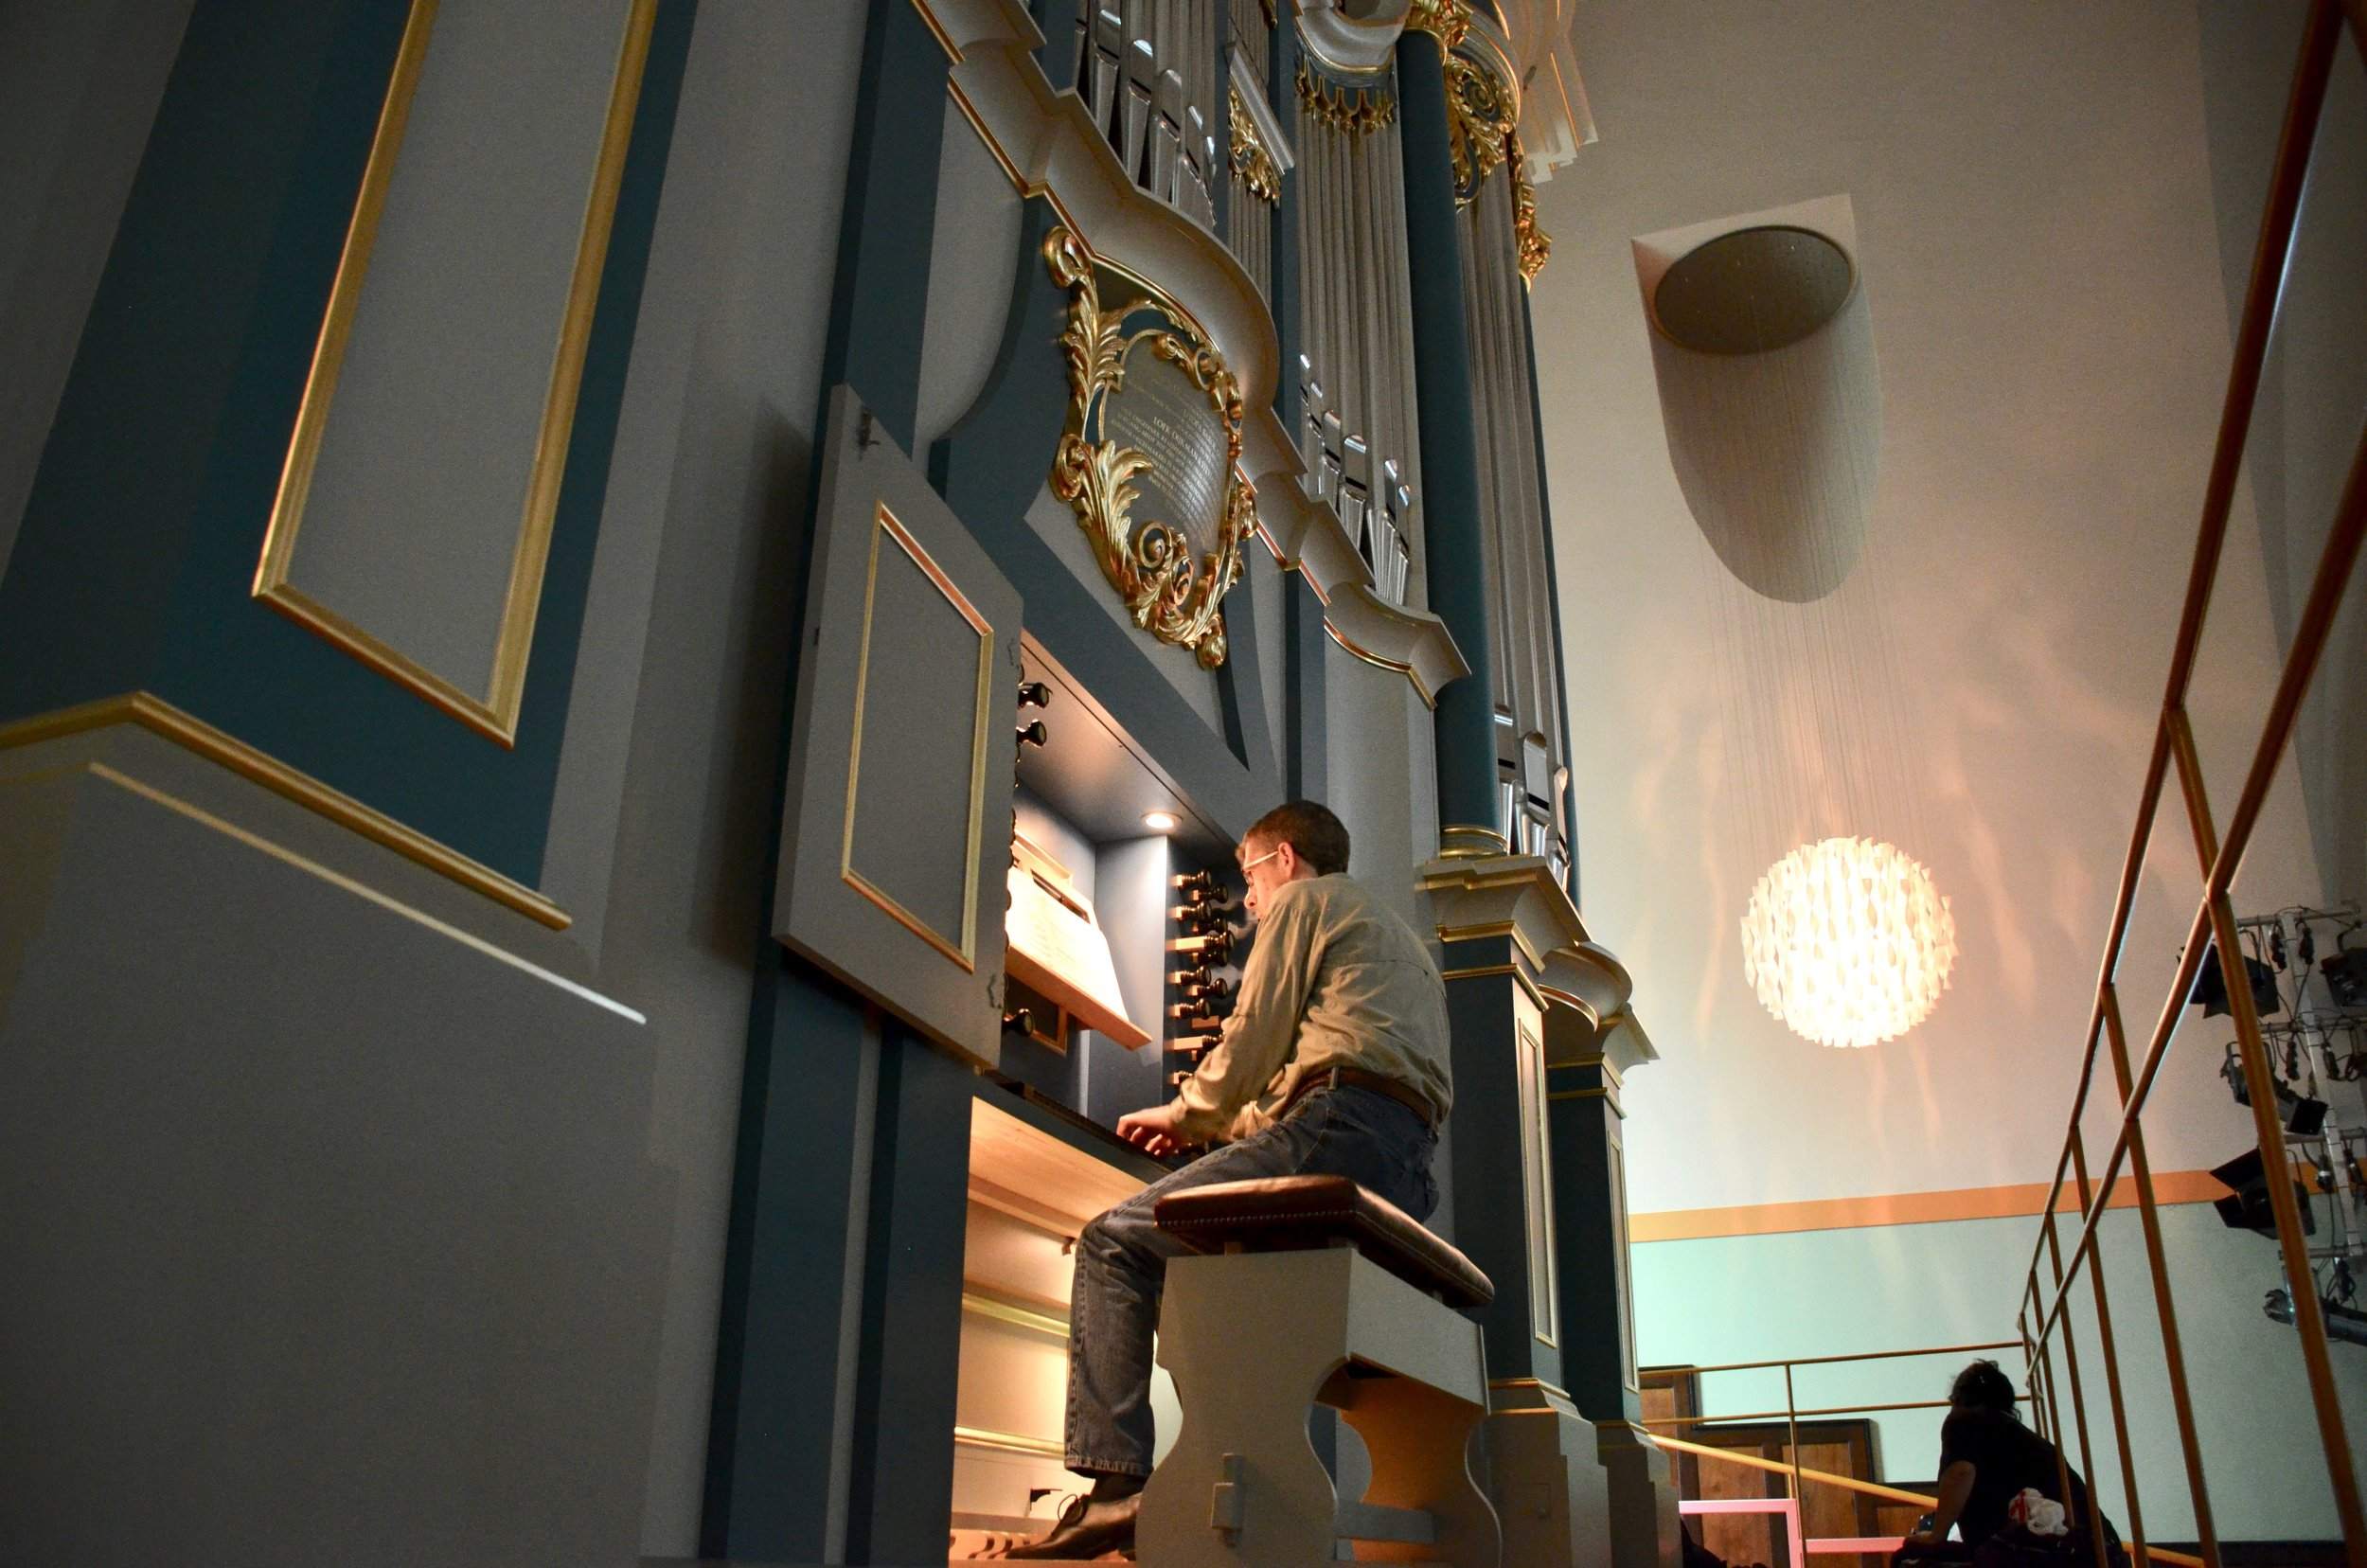 Chris Porter plays the new Baroque organ in Orgelpark, Amsterdam.